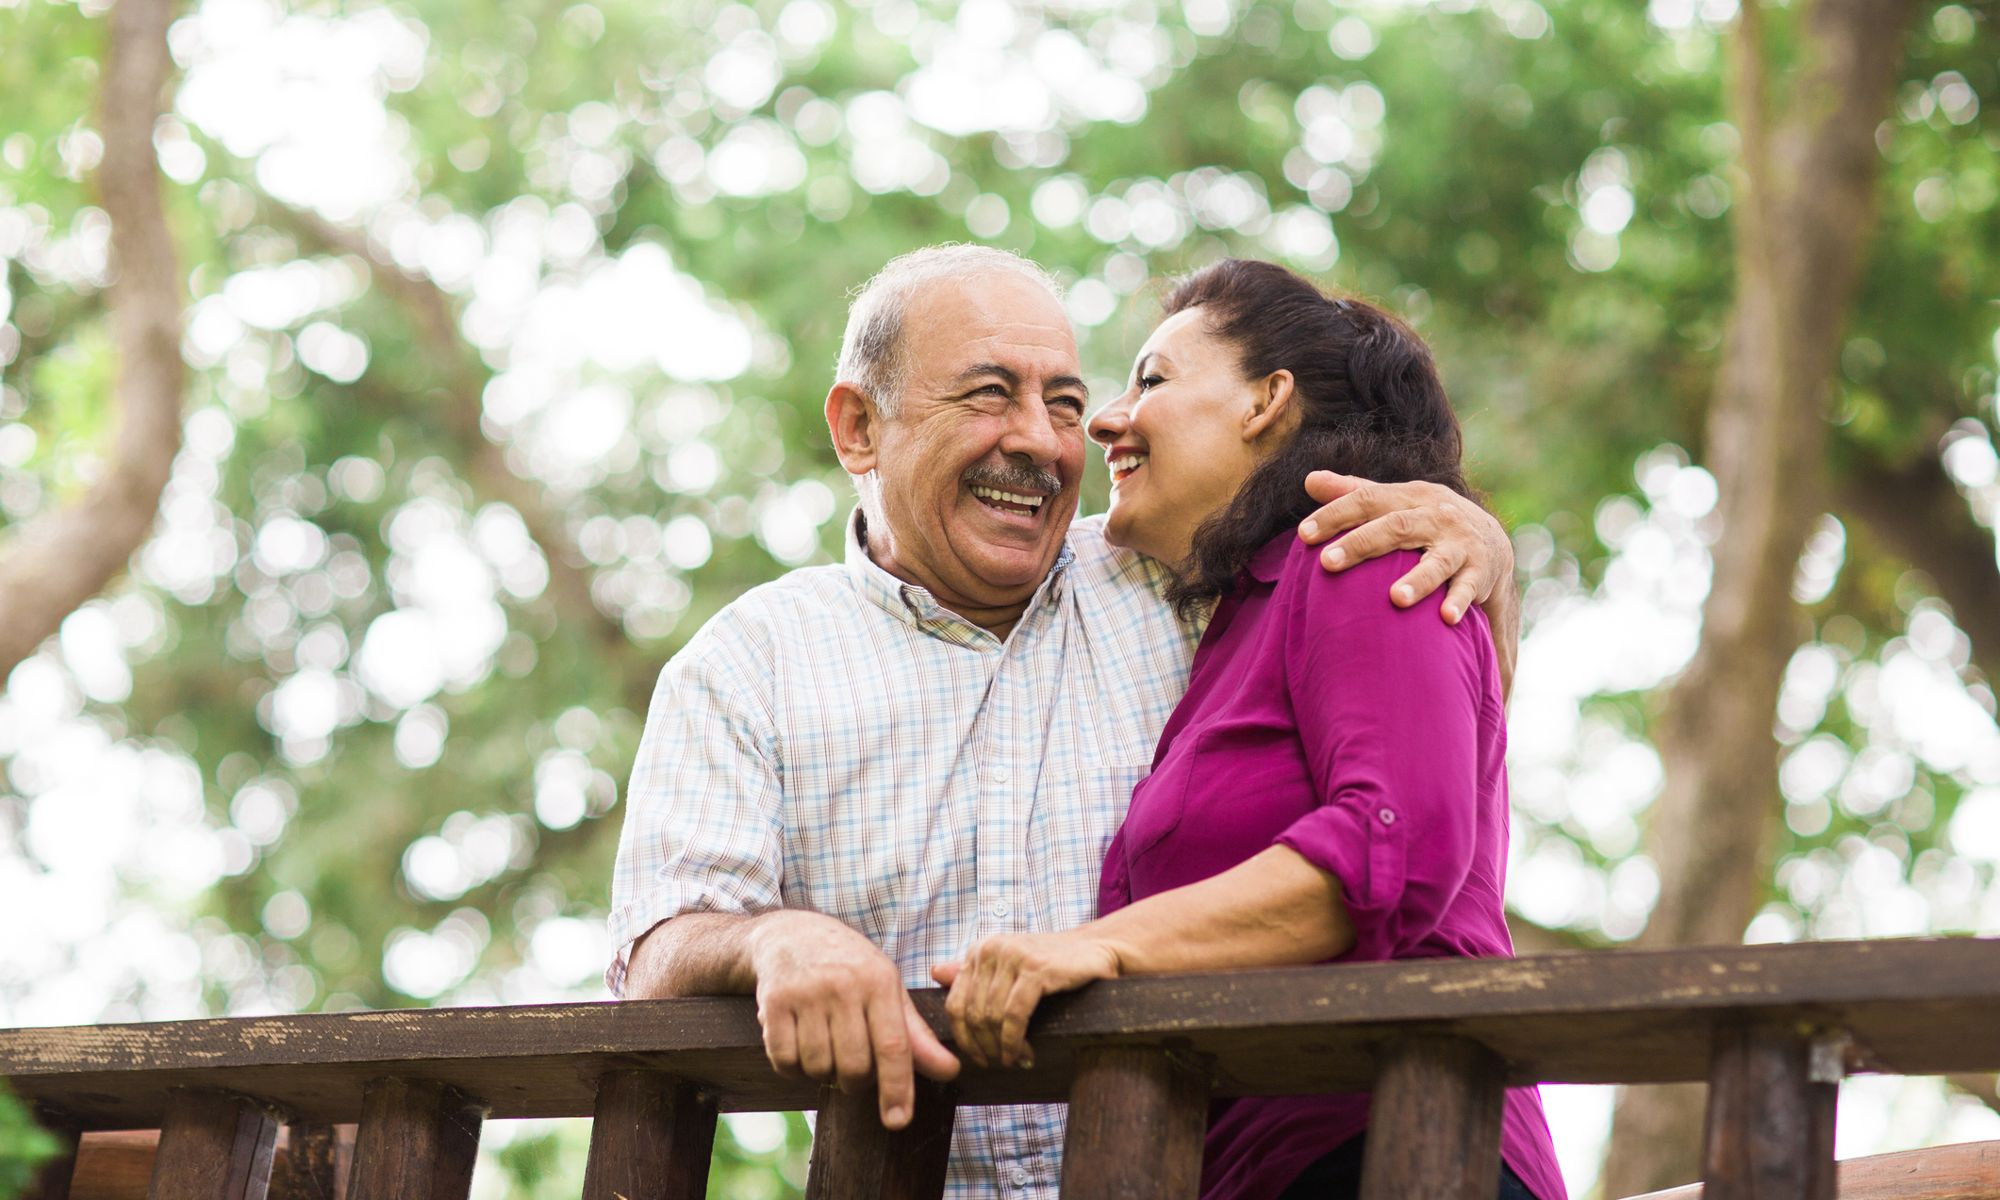 Live and love life with those most important at Pacifica Senior Living Merced